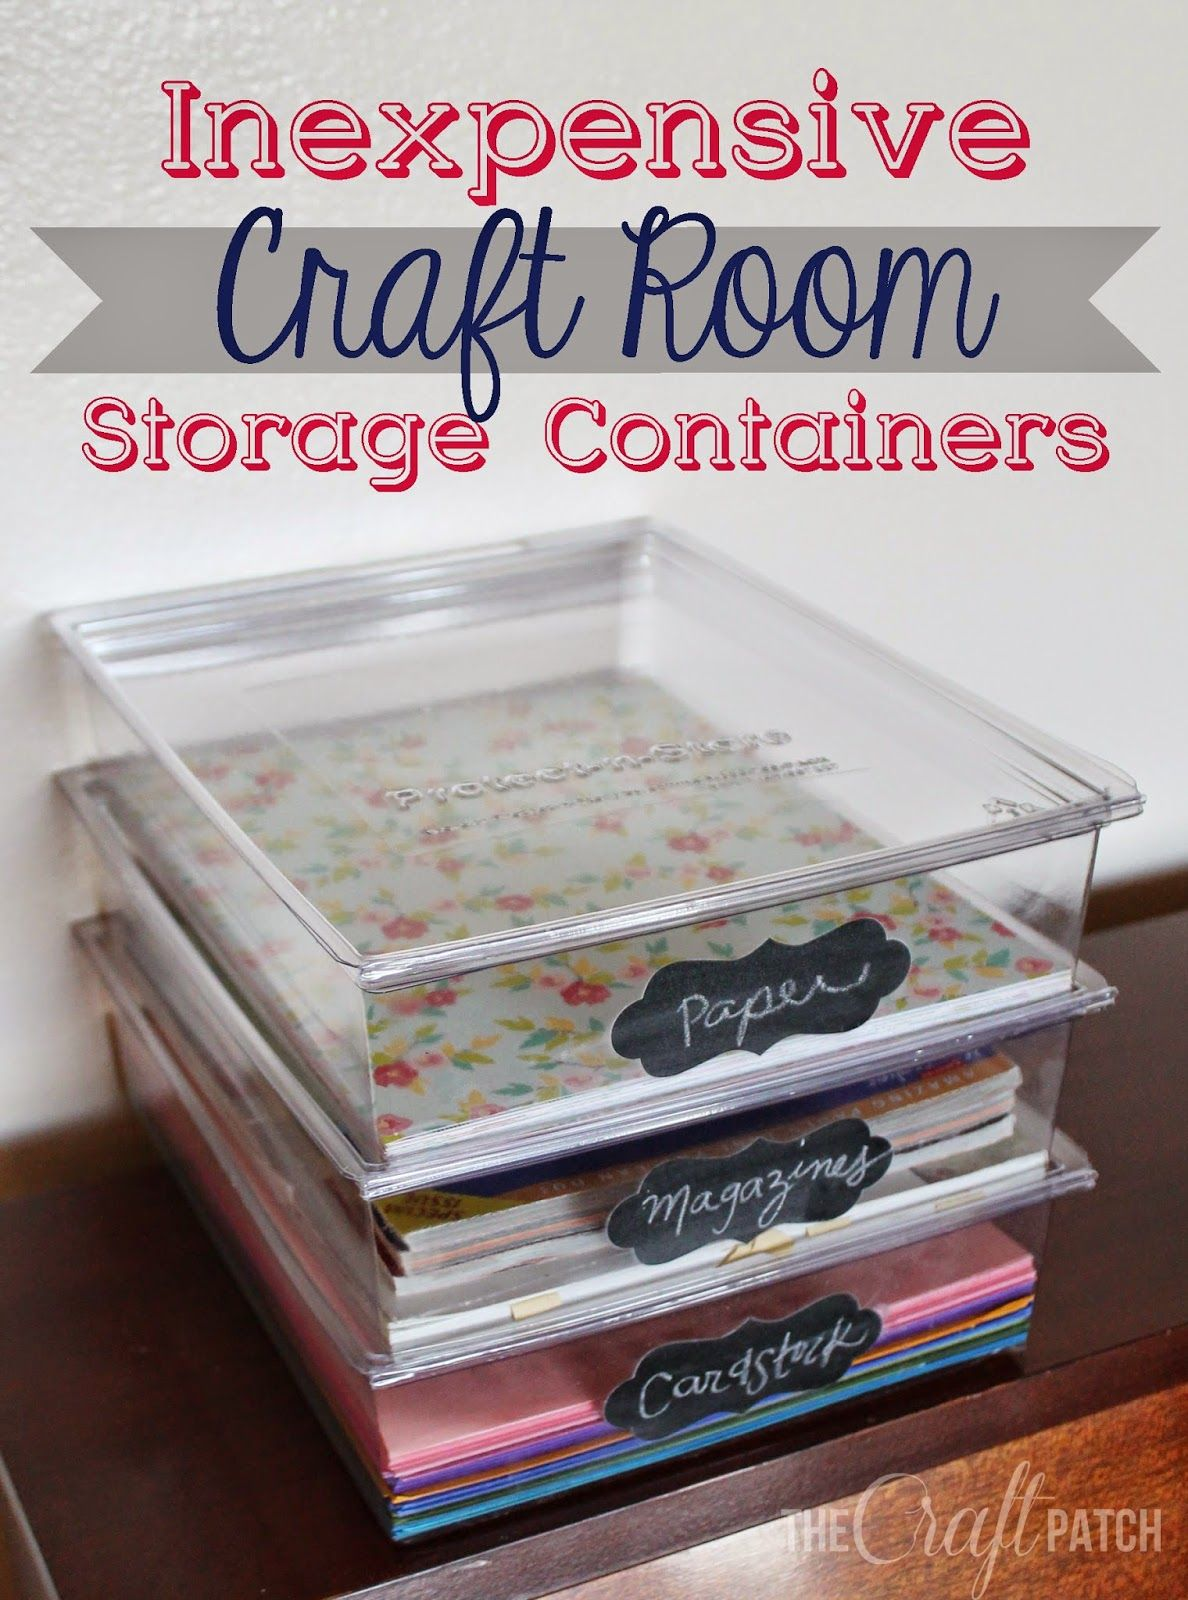 How to store scrapbook paper - Store Scrapbook Paper And Other Craft Supplies In These Clear Budget Friendly Craft Room Storage Containers With Chalkboard Labels